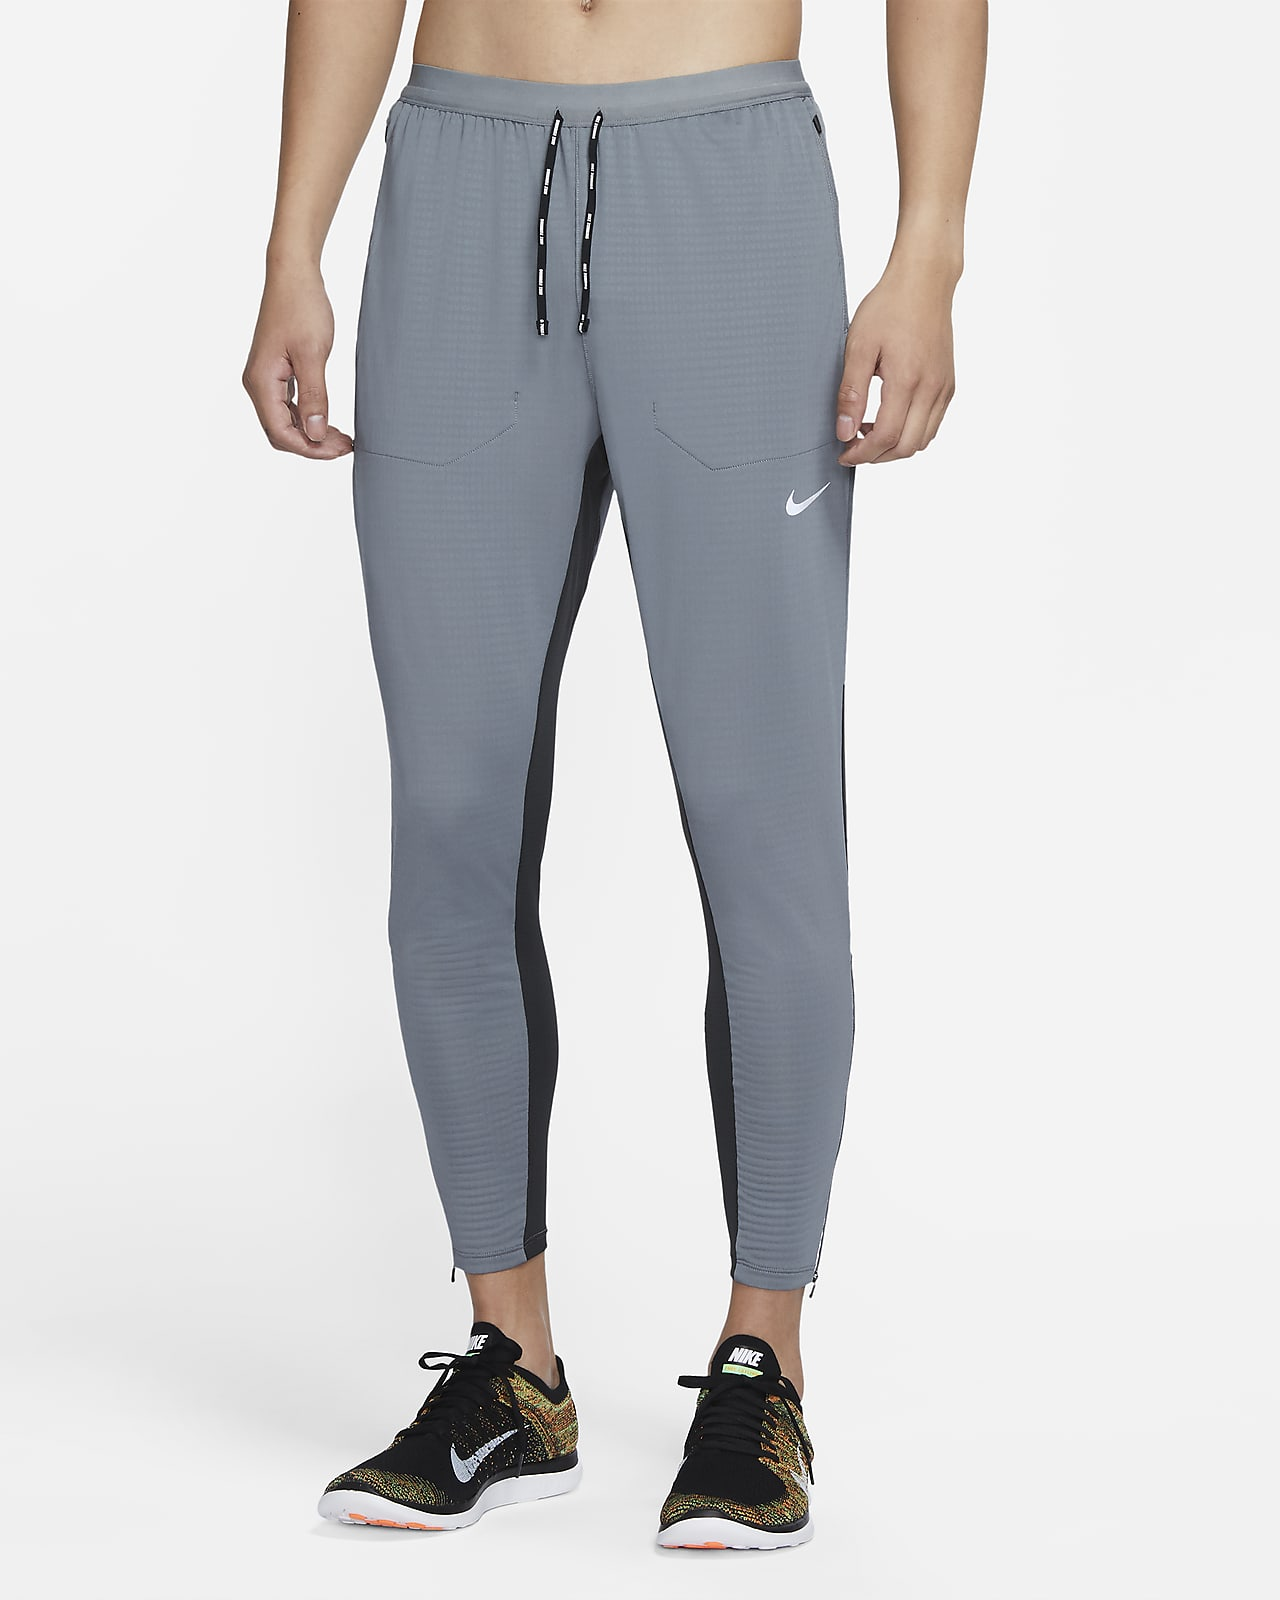 Nike Phenom Elite Men's Knit Running Trousers